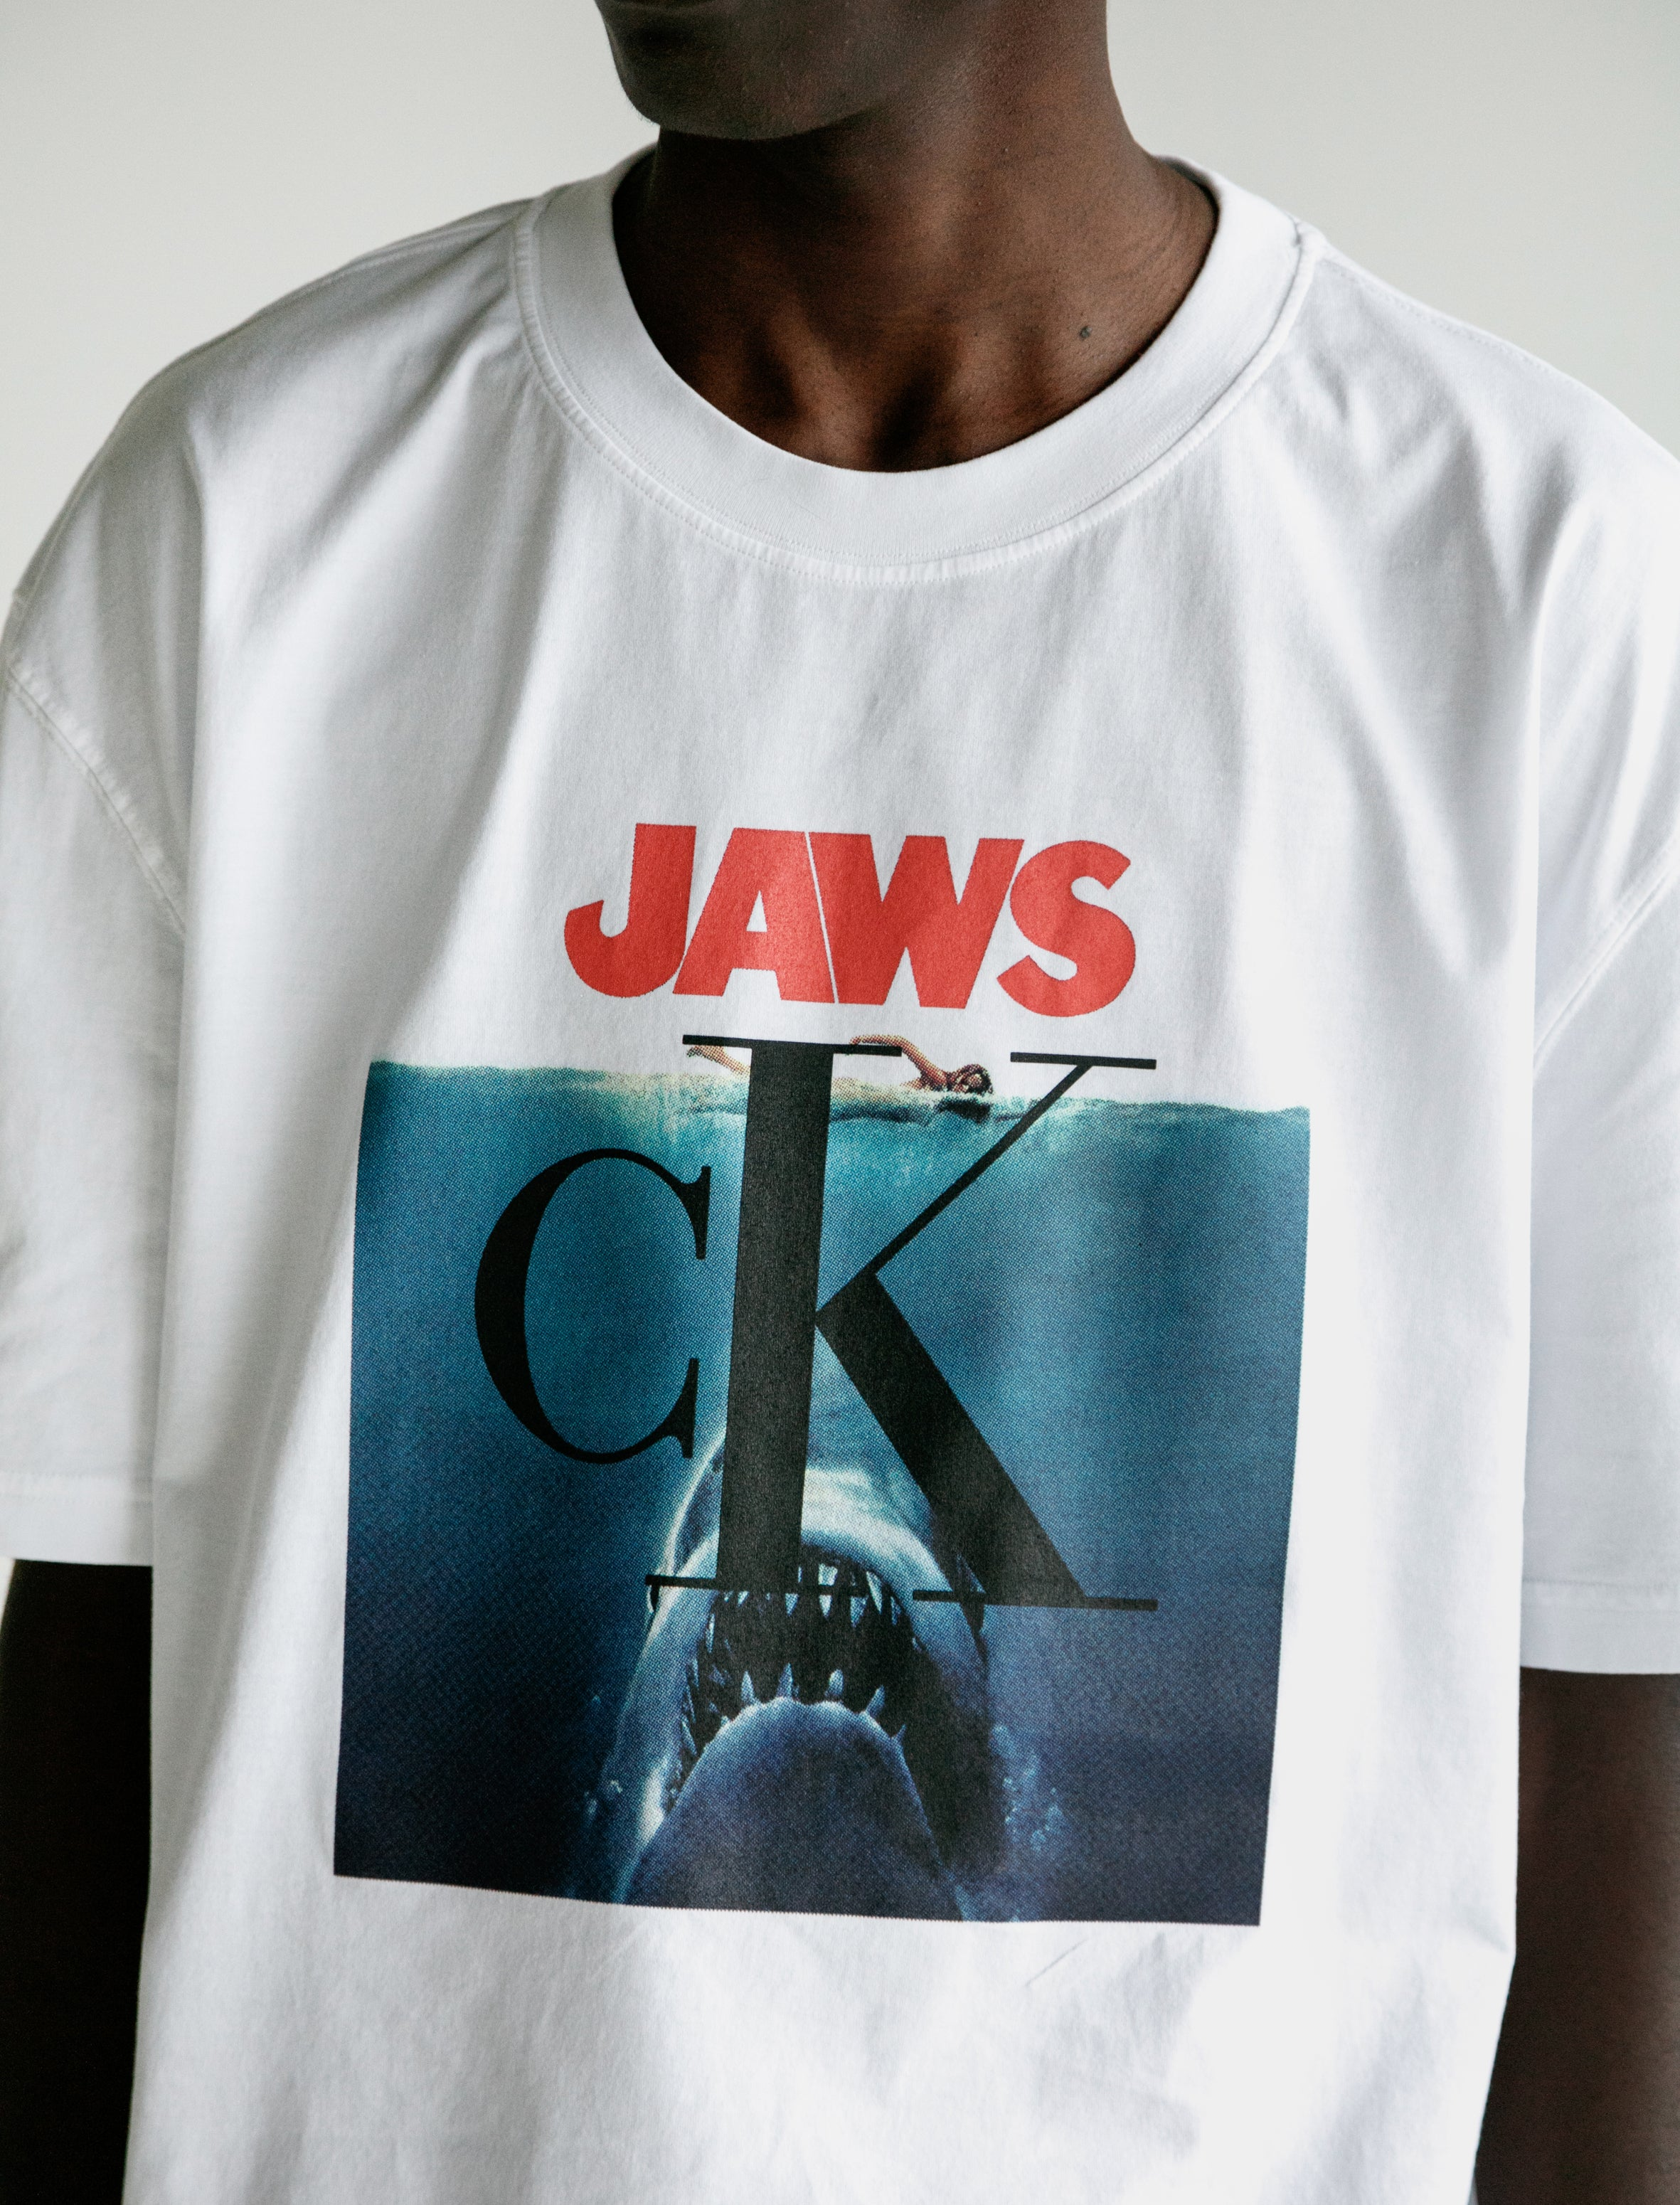 4c36535f540a Calvin Klein 205 W39 NYC Jaws T-Shirt – Neighbour